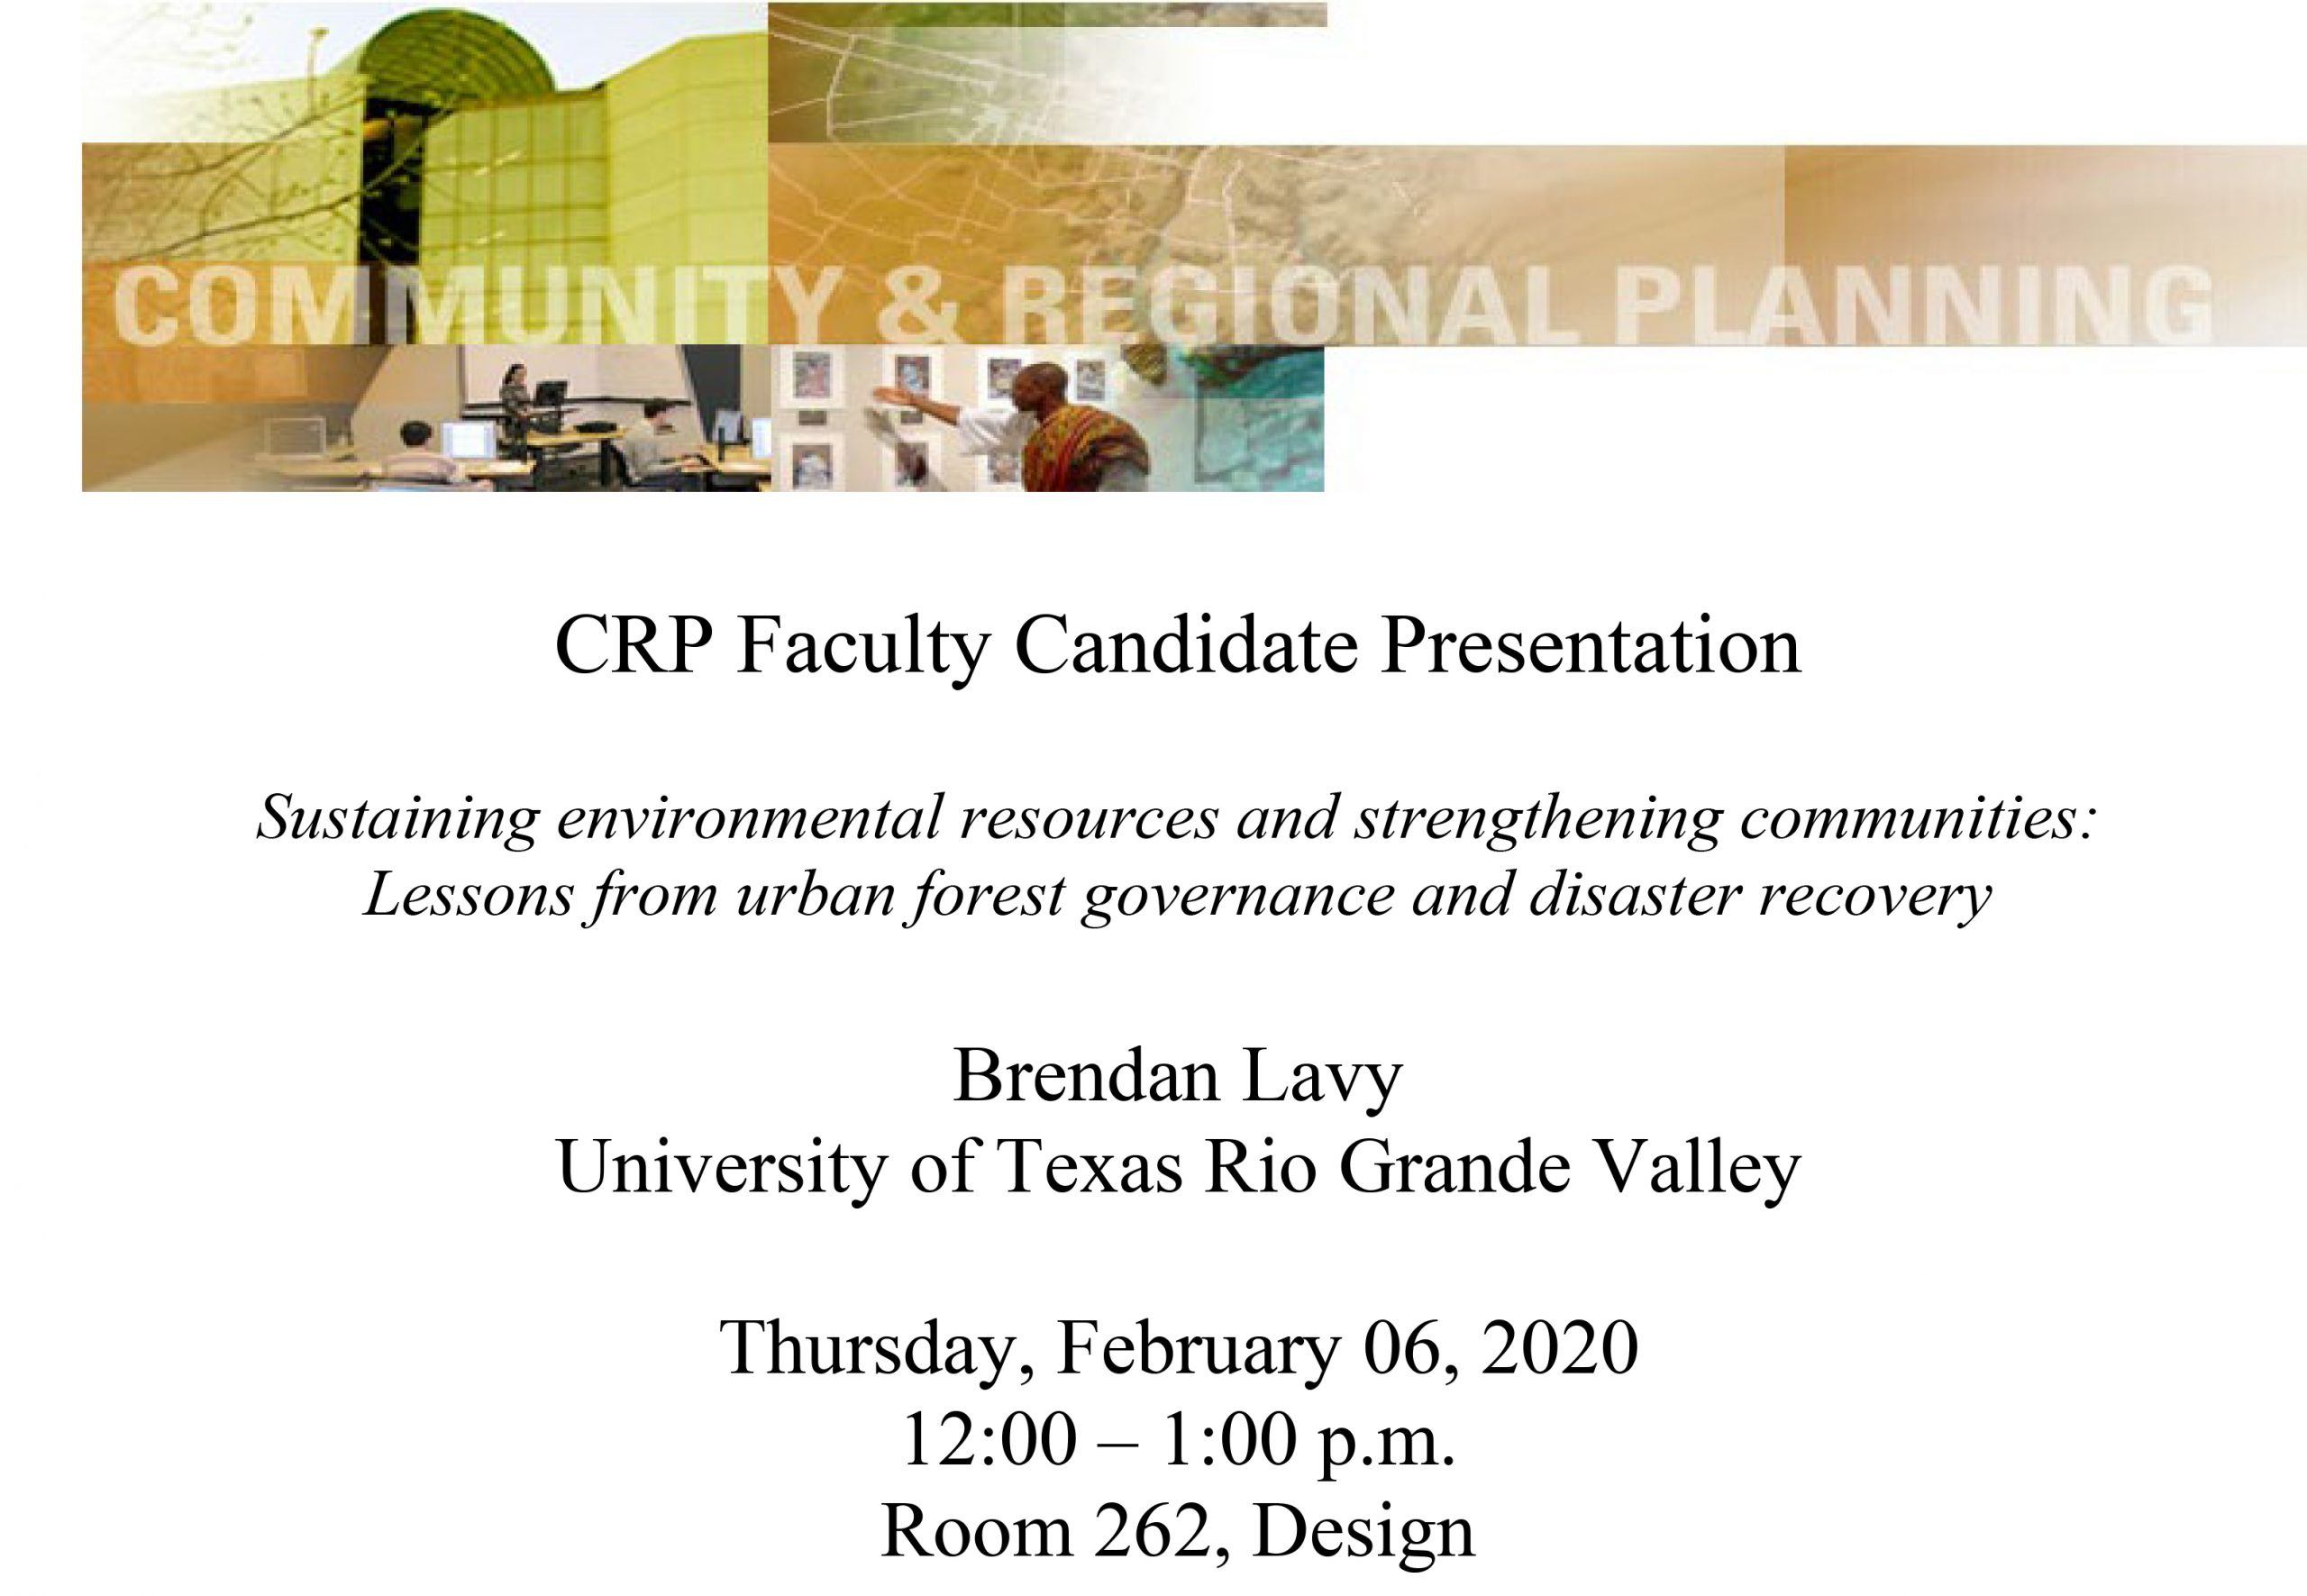 CRP Faculty Candidate Presentation: Brendan Lavy